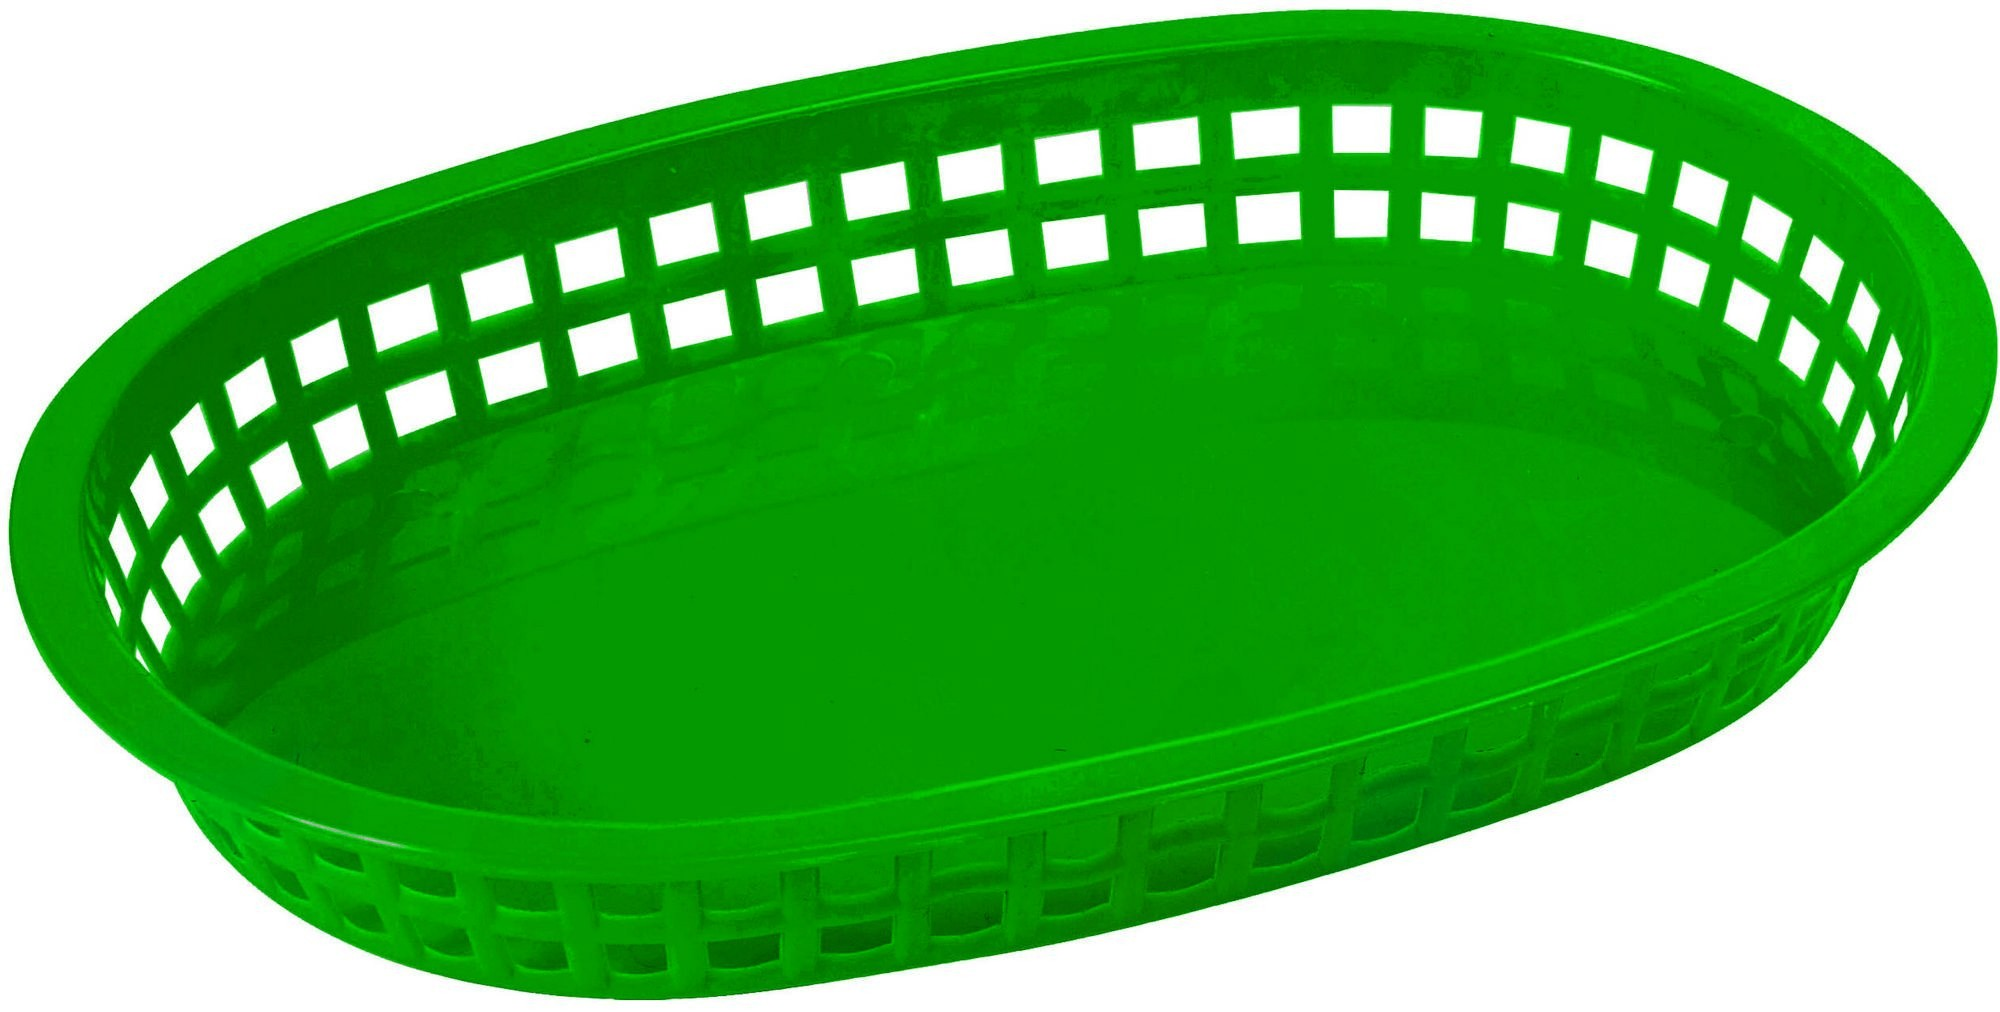 "Winco PLB-G Green Oval Fast Food Basket, 10-3/4"" x 7-1/4"" x 1-1/2"""